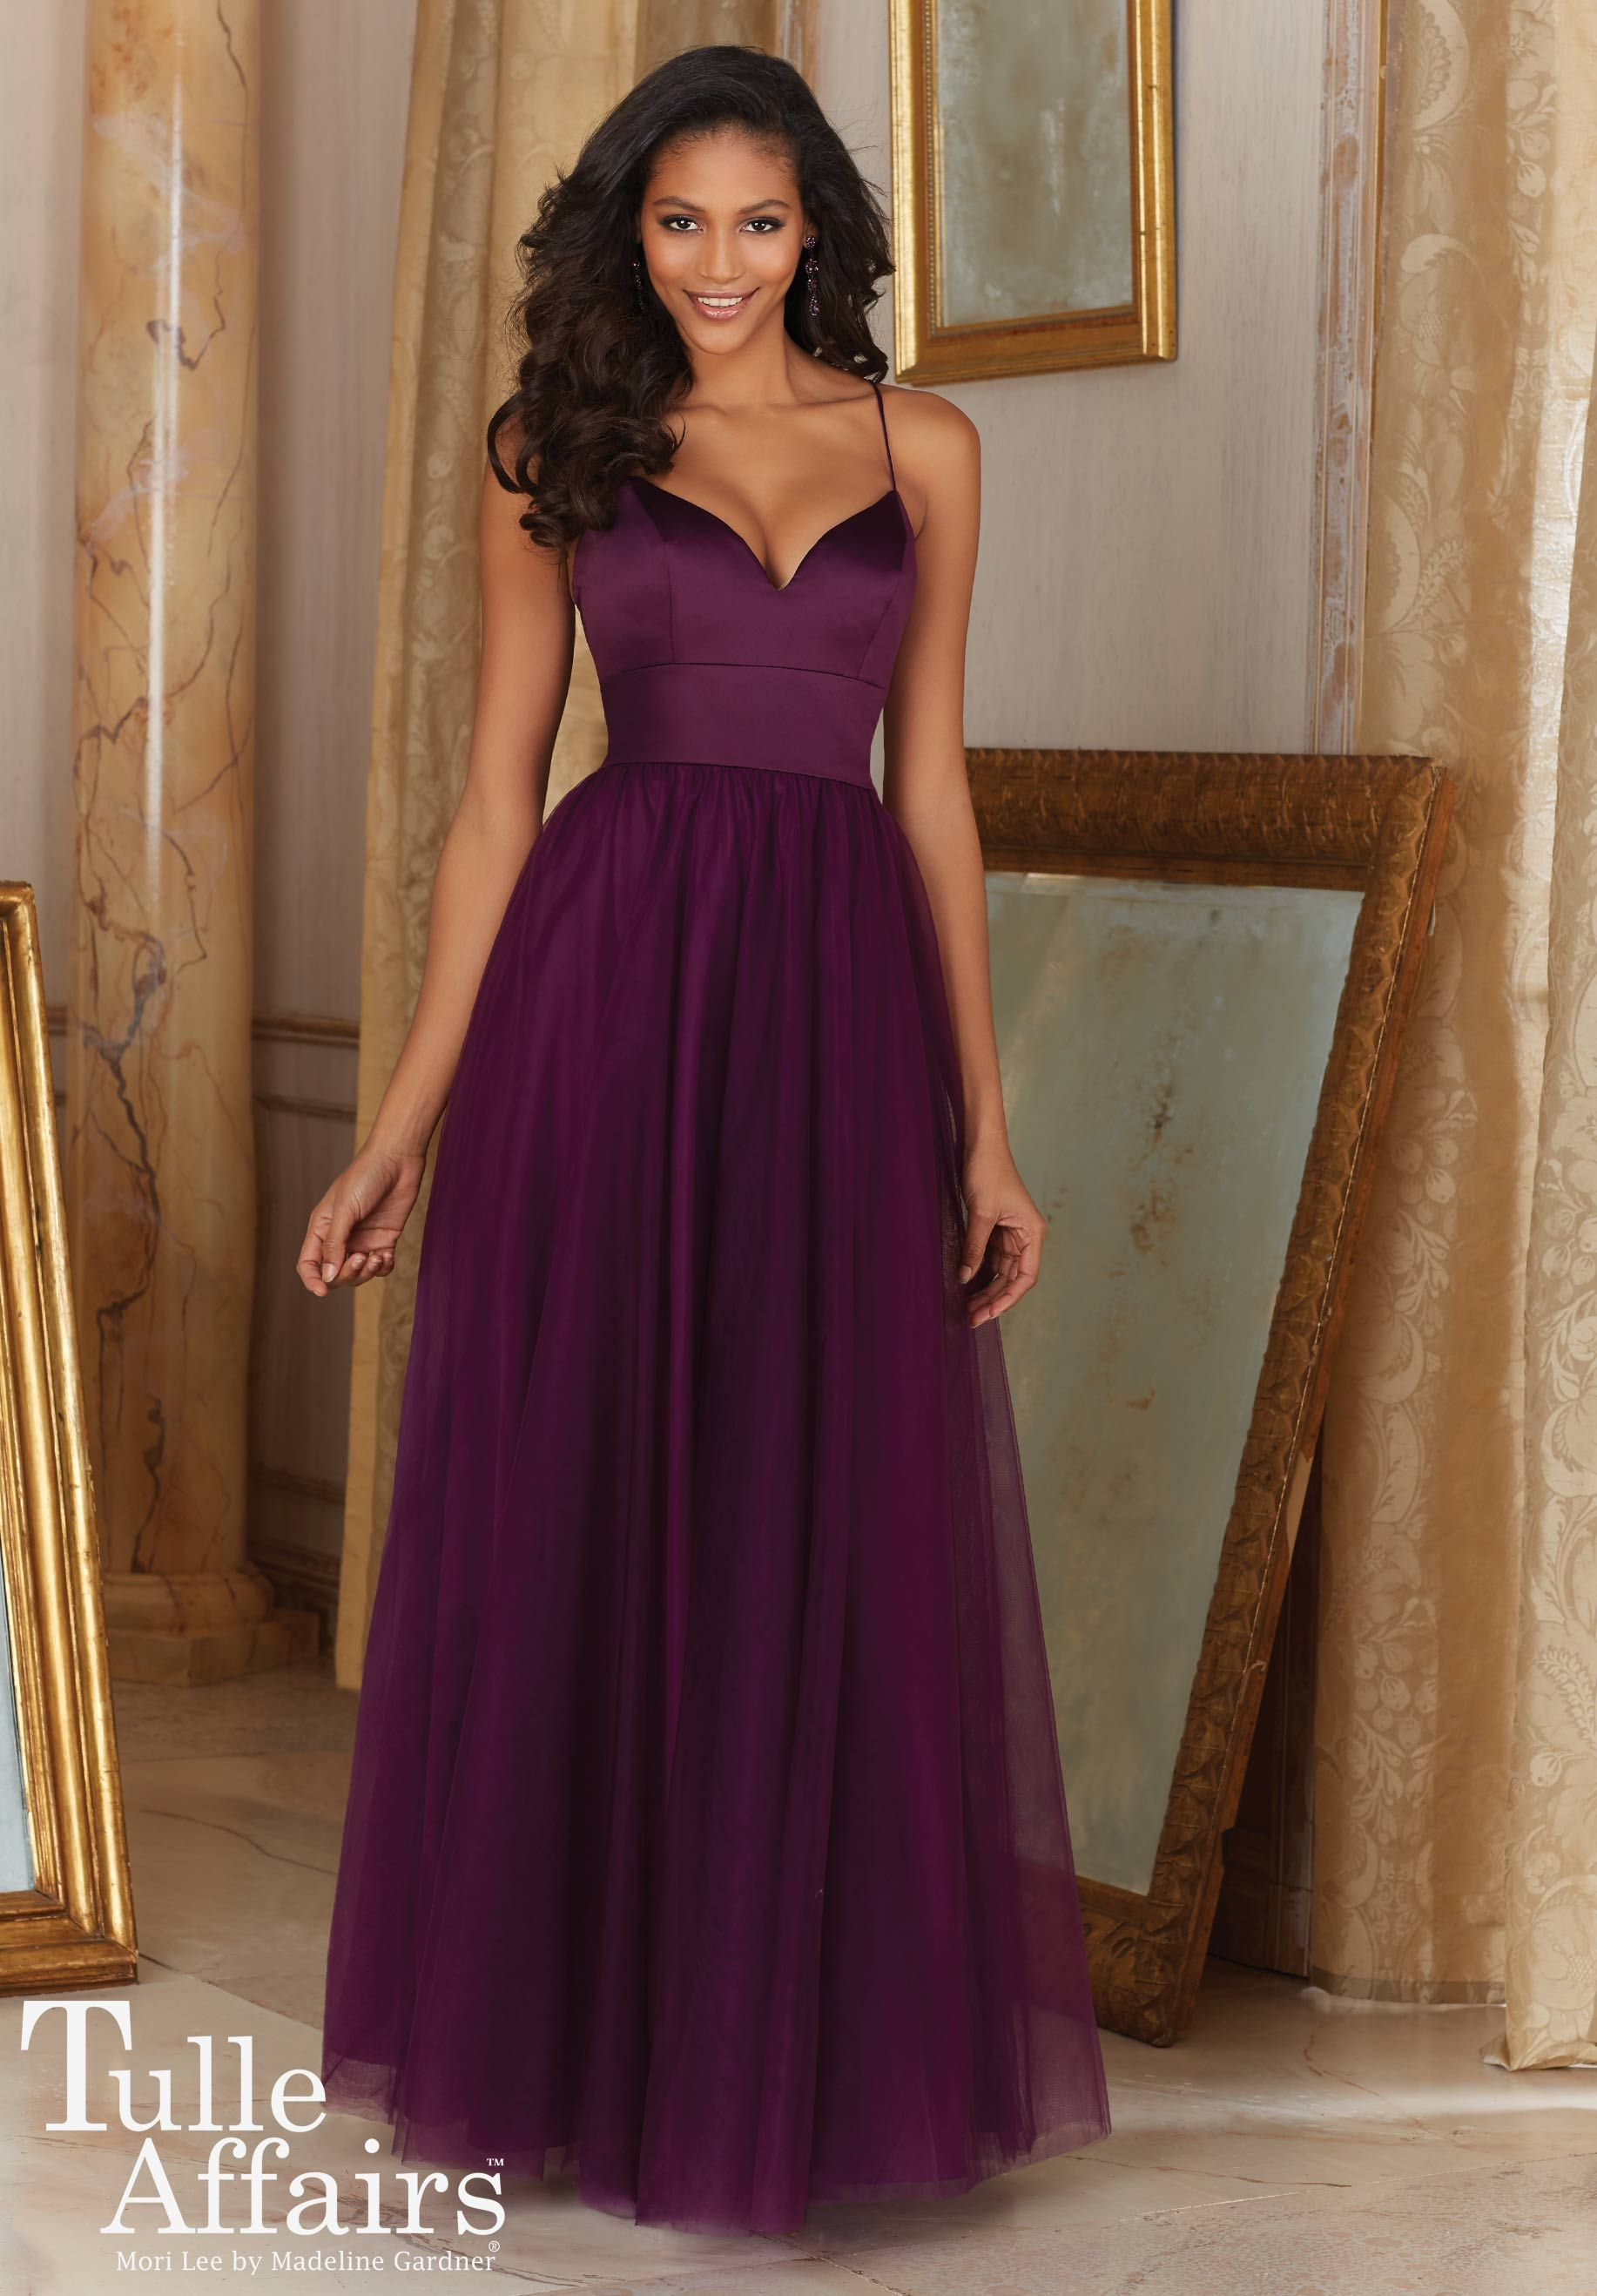 MoriLee Tulle Affairs - available in Violet (http://www.morilee.com ...